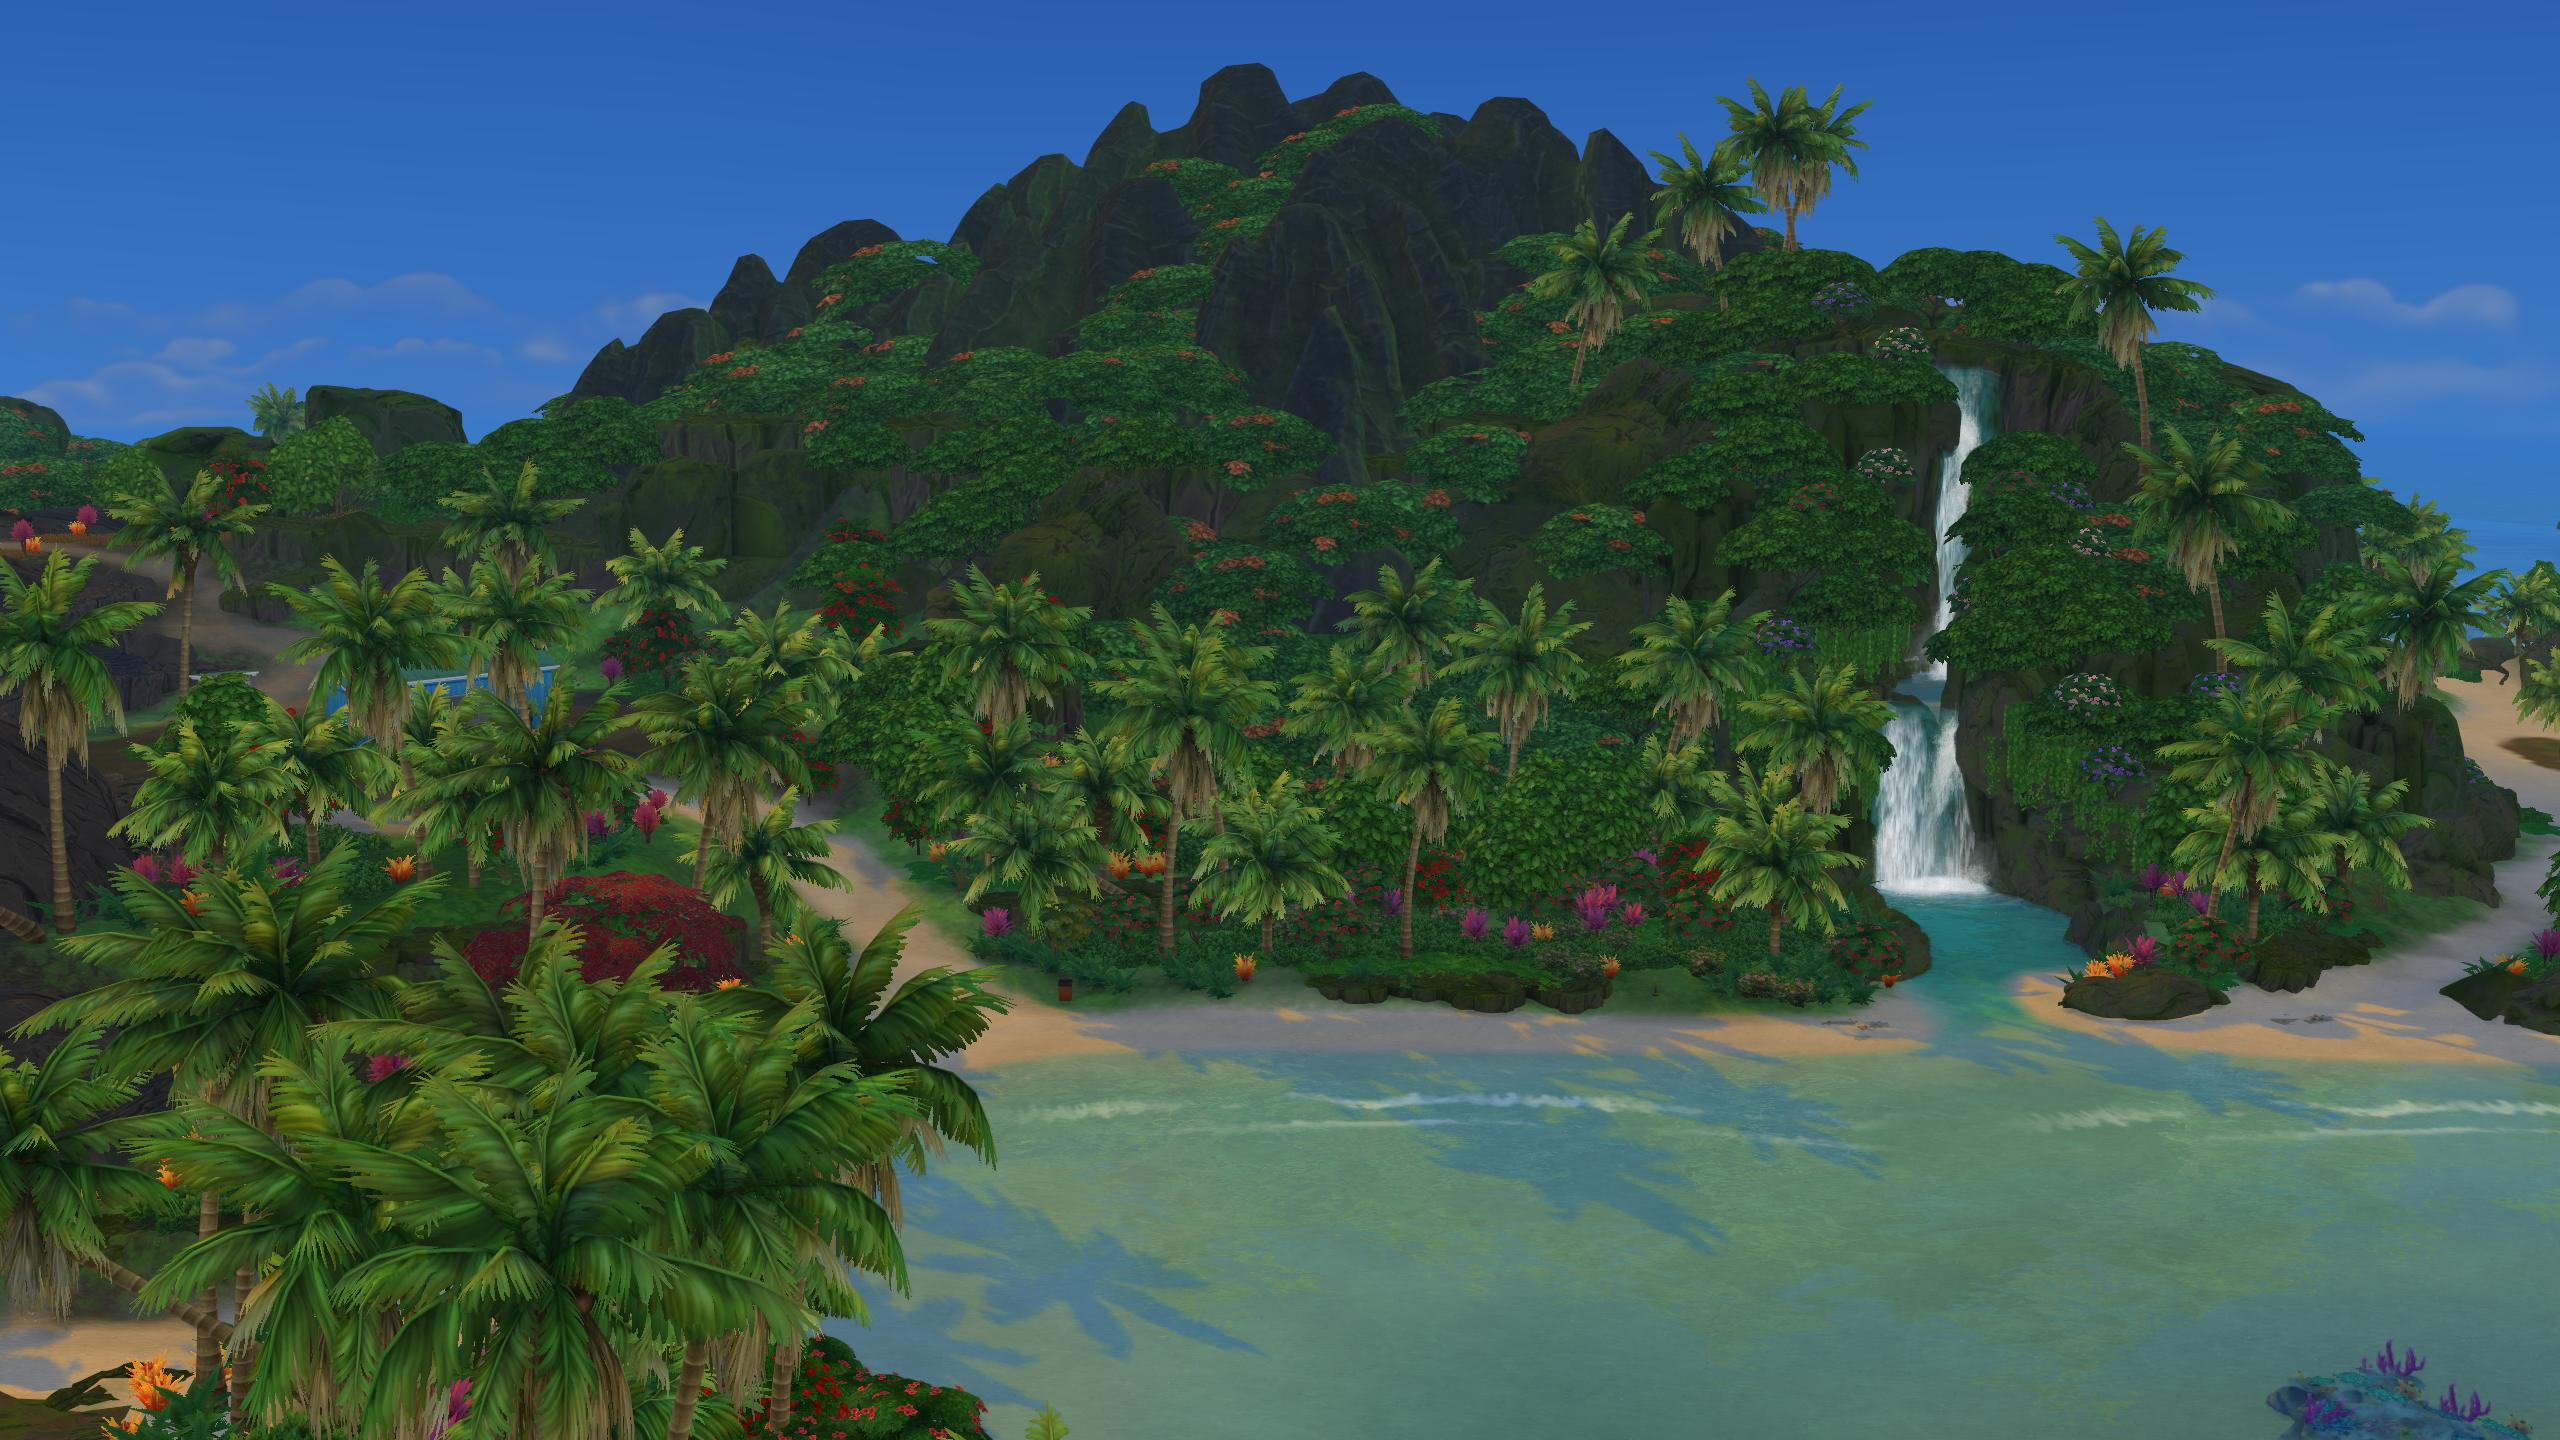 Ecology of one island is changeable in The Sims 4 Island Living